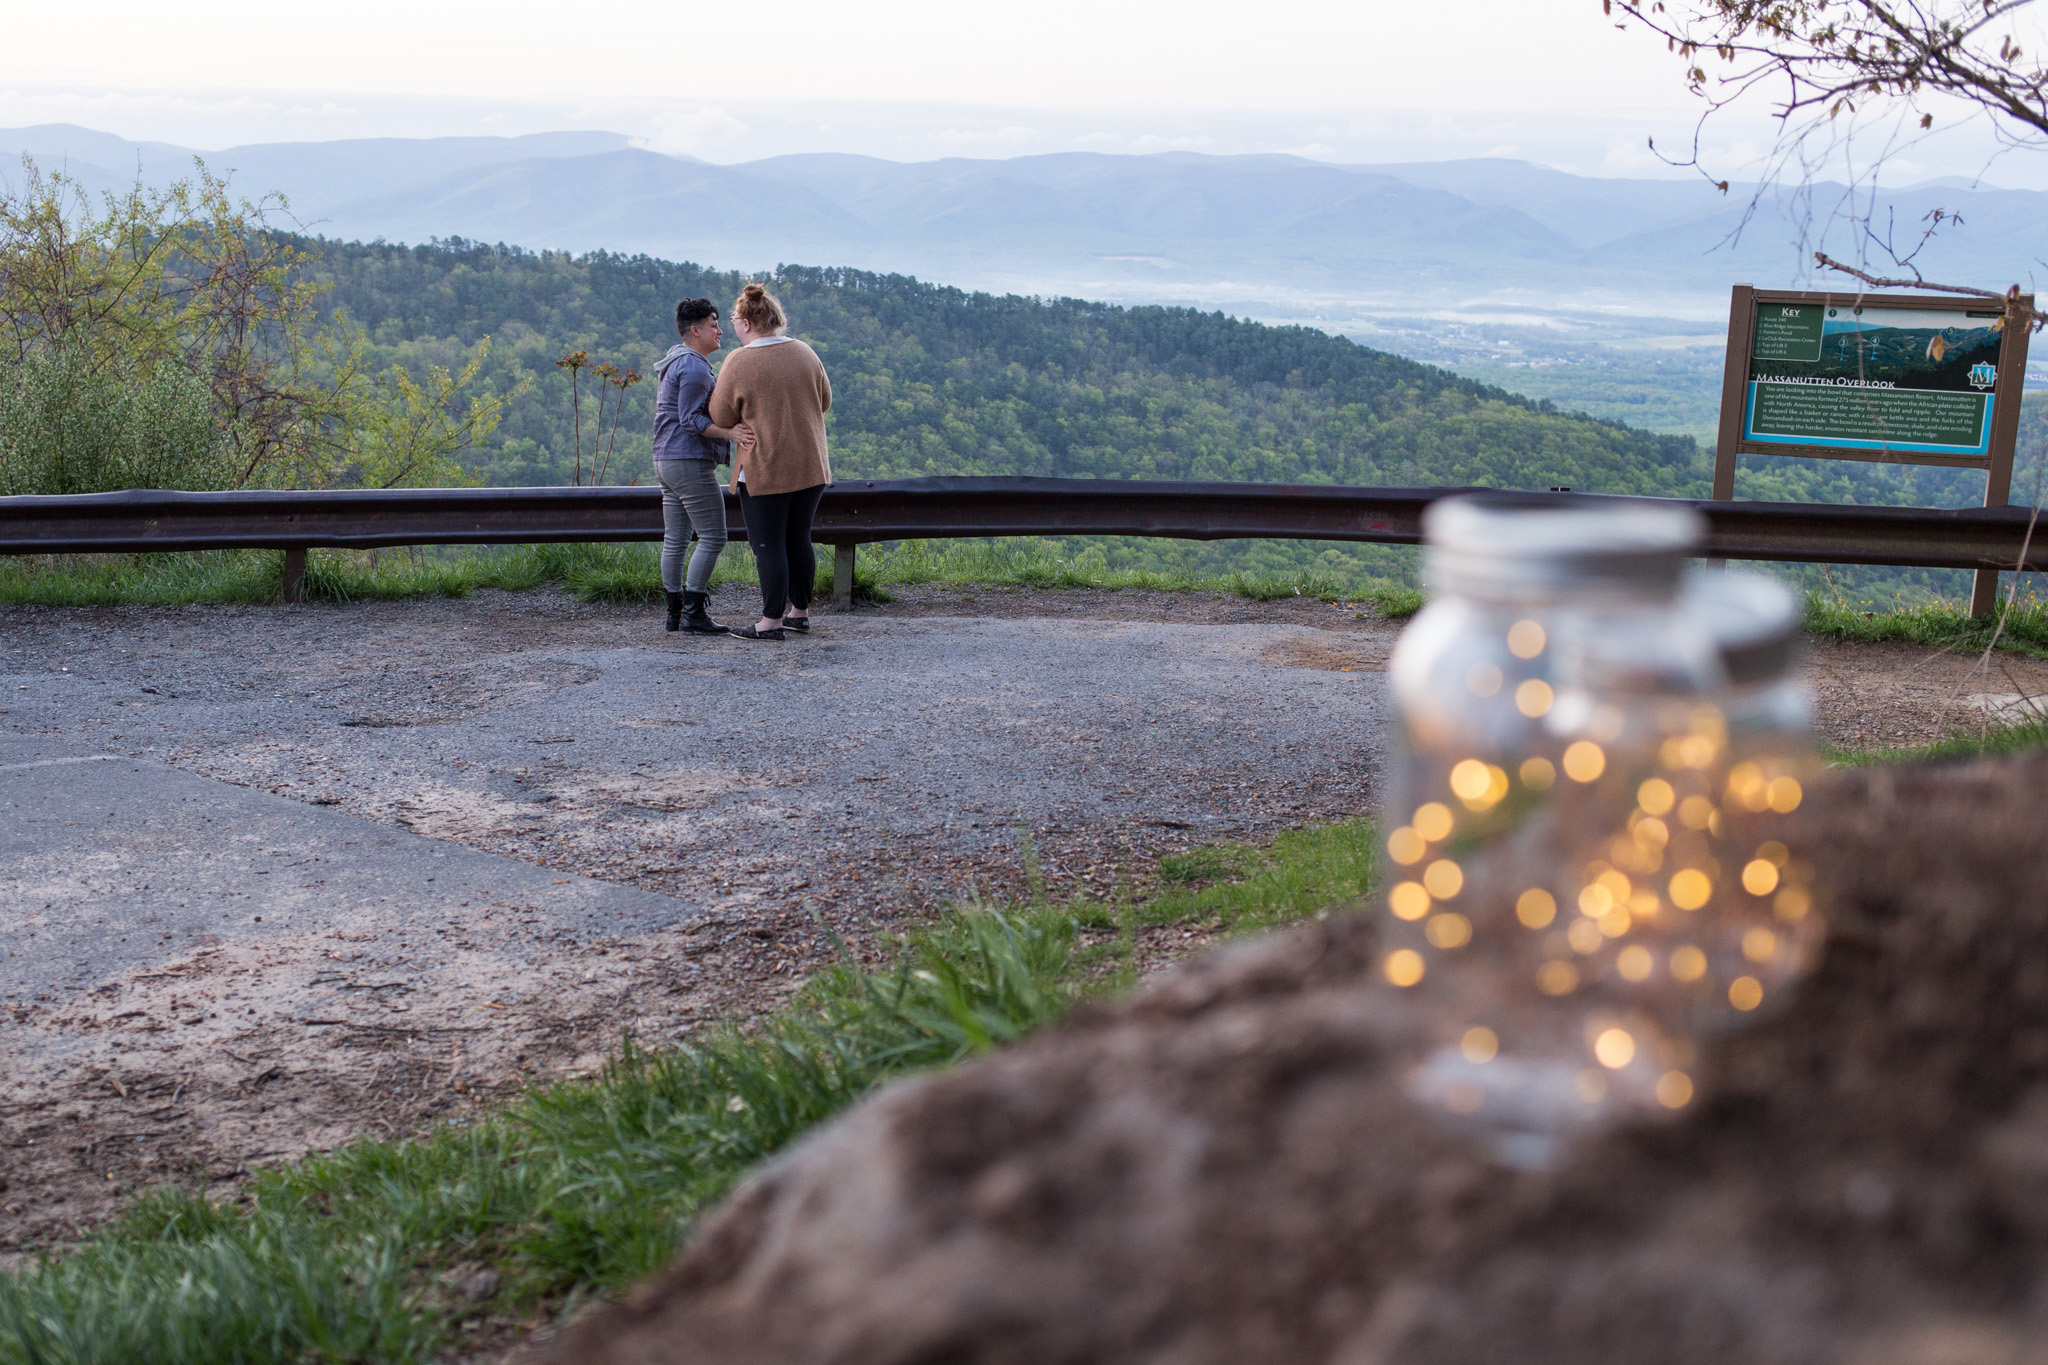 LightCreative_201904_AlexanBecky_Raleigh_Proposal_Photography_020_blog.jpg